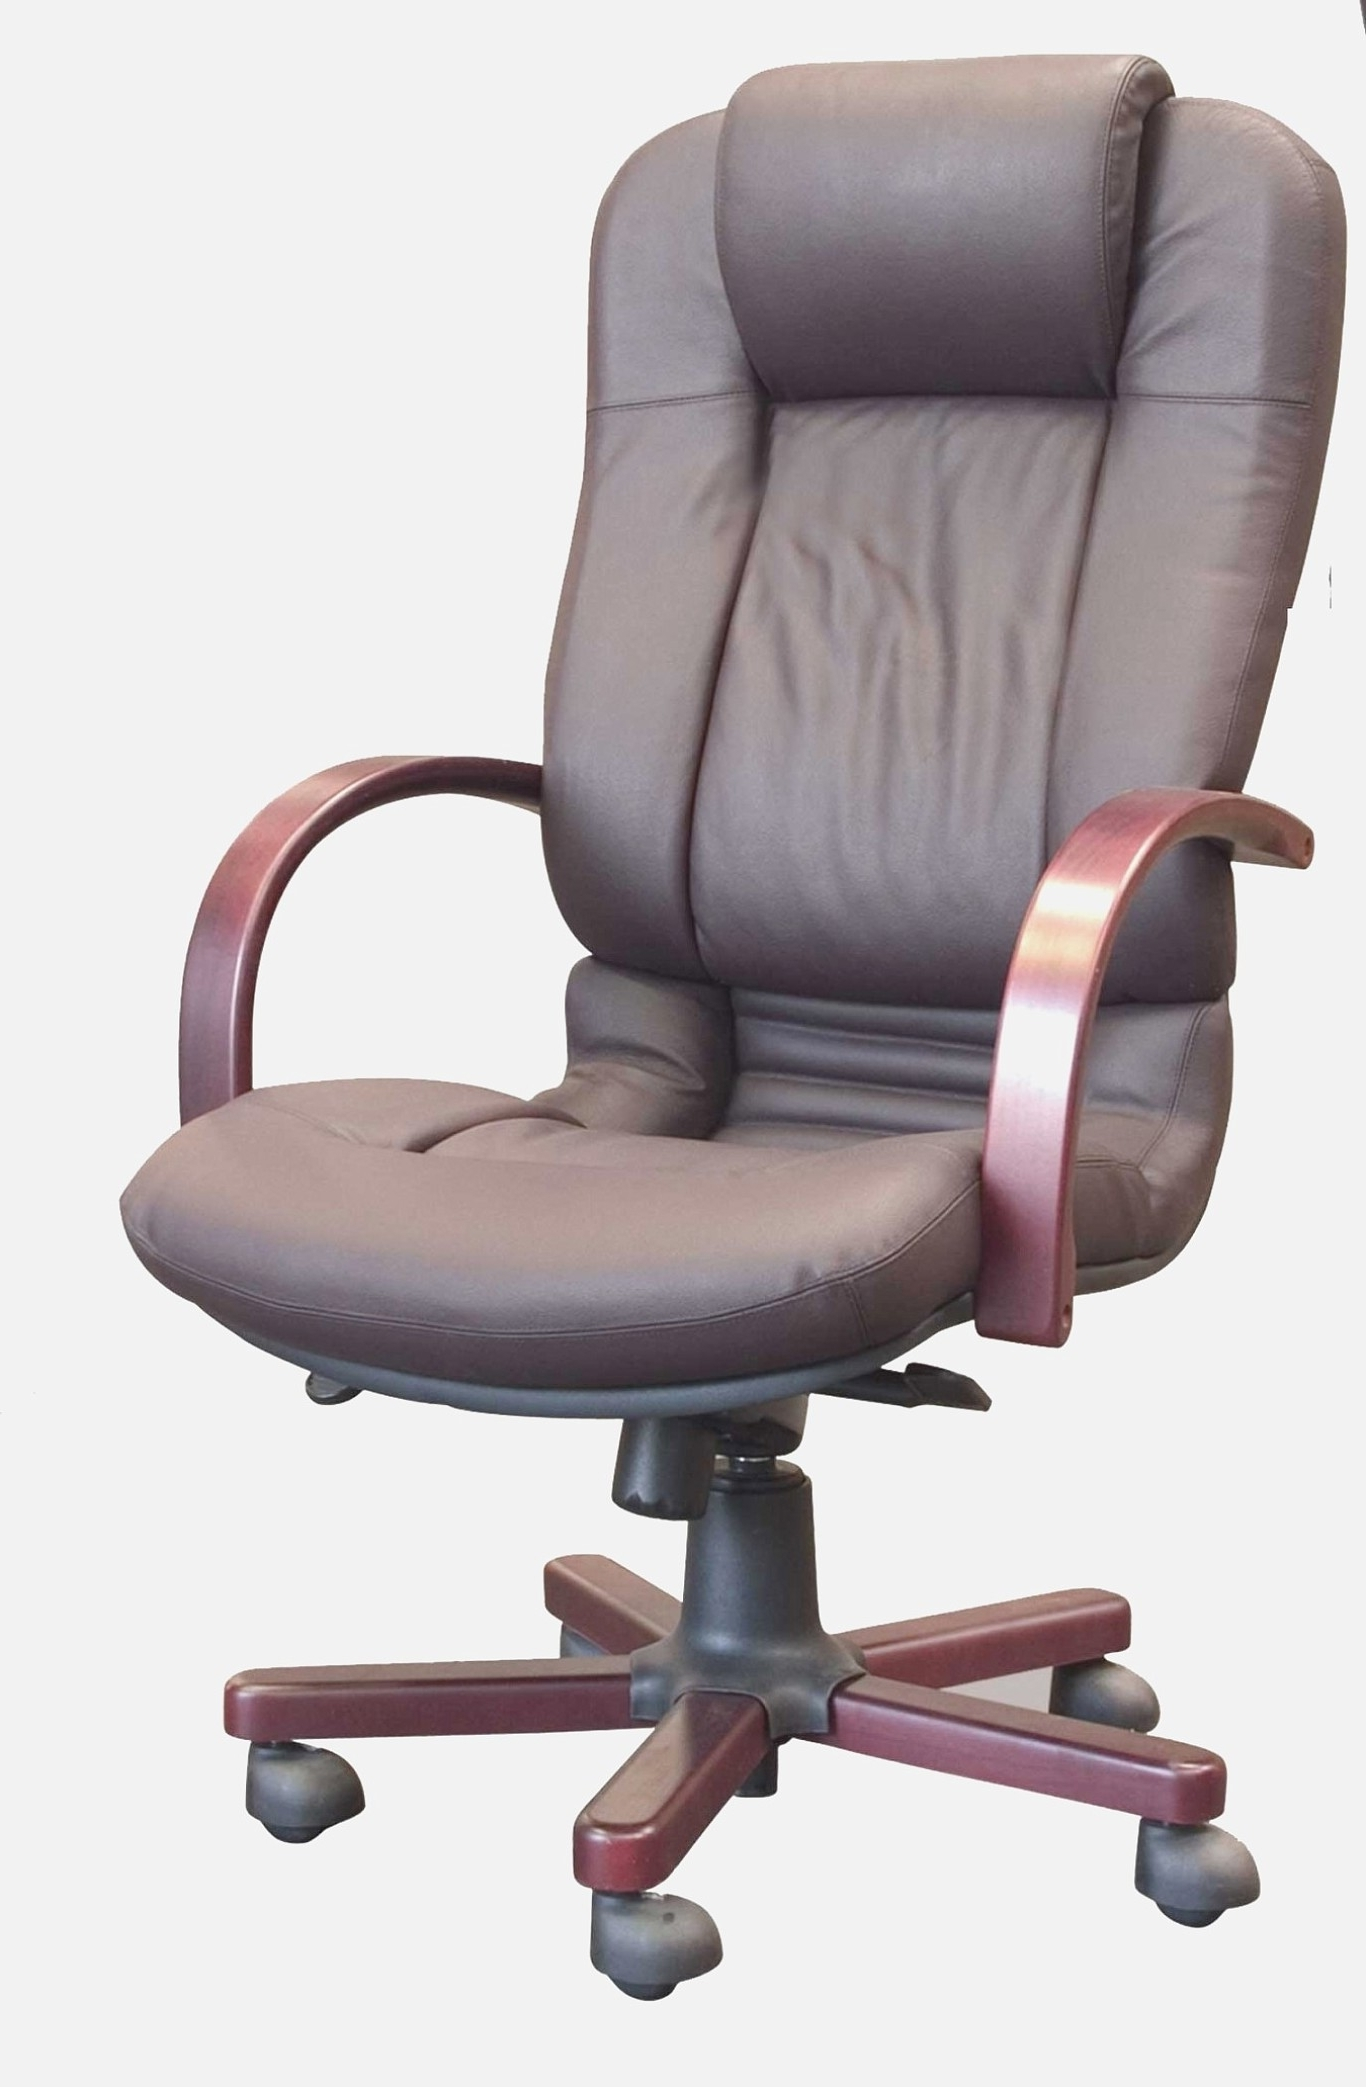 Hon Executive Office Chairs For Recent Executive Office Desk Office Furniture Visitors Chairs Where To (View 4 of 20)